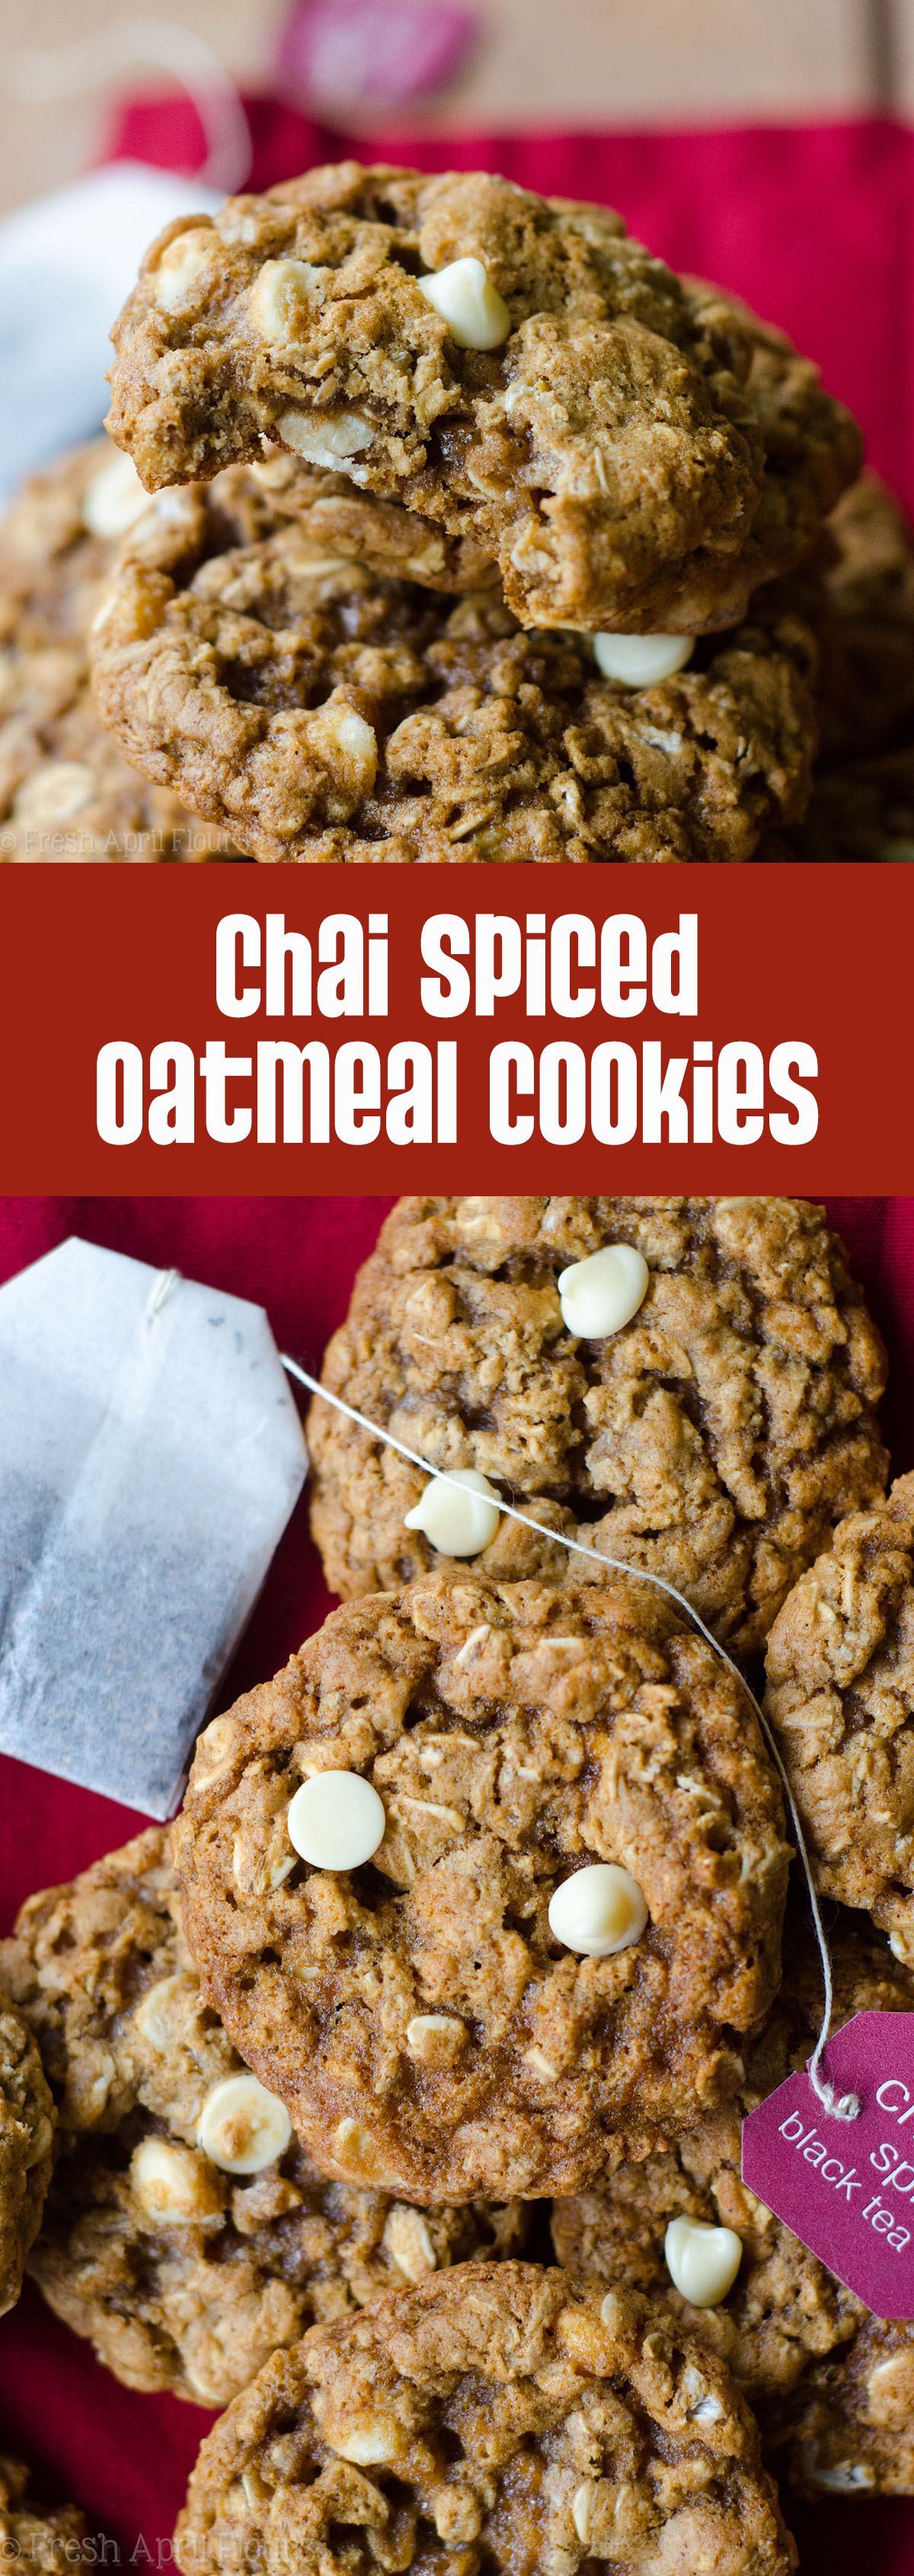 Chai Spiced Oatmeal Cookies: Classic oatmeal cookies get a spicy makeover with cinnamon, cardamom, and ginger.